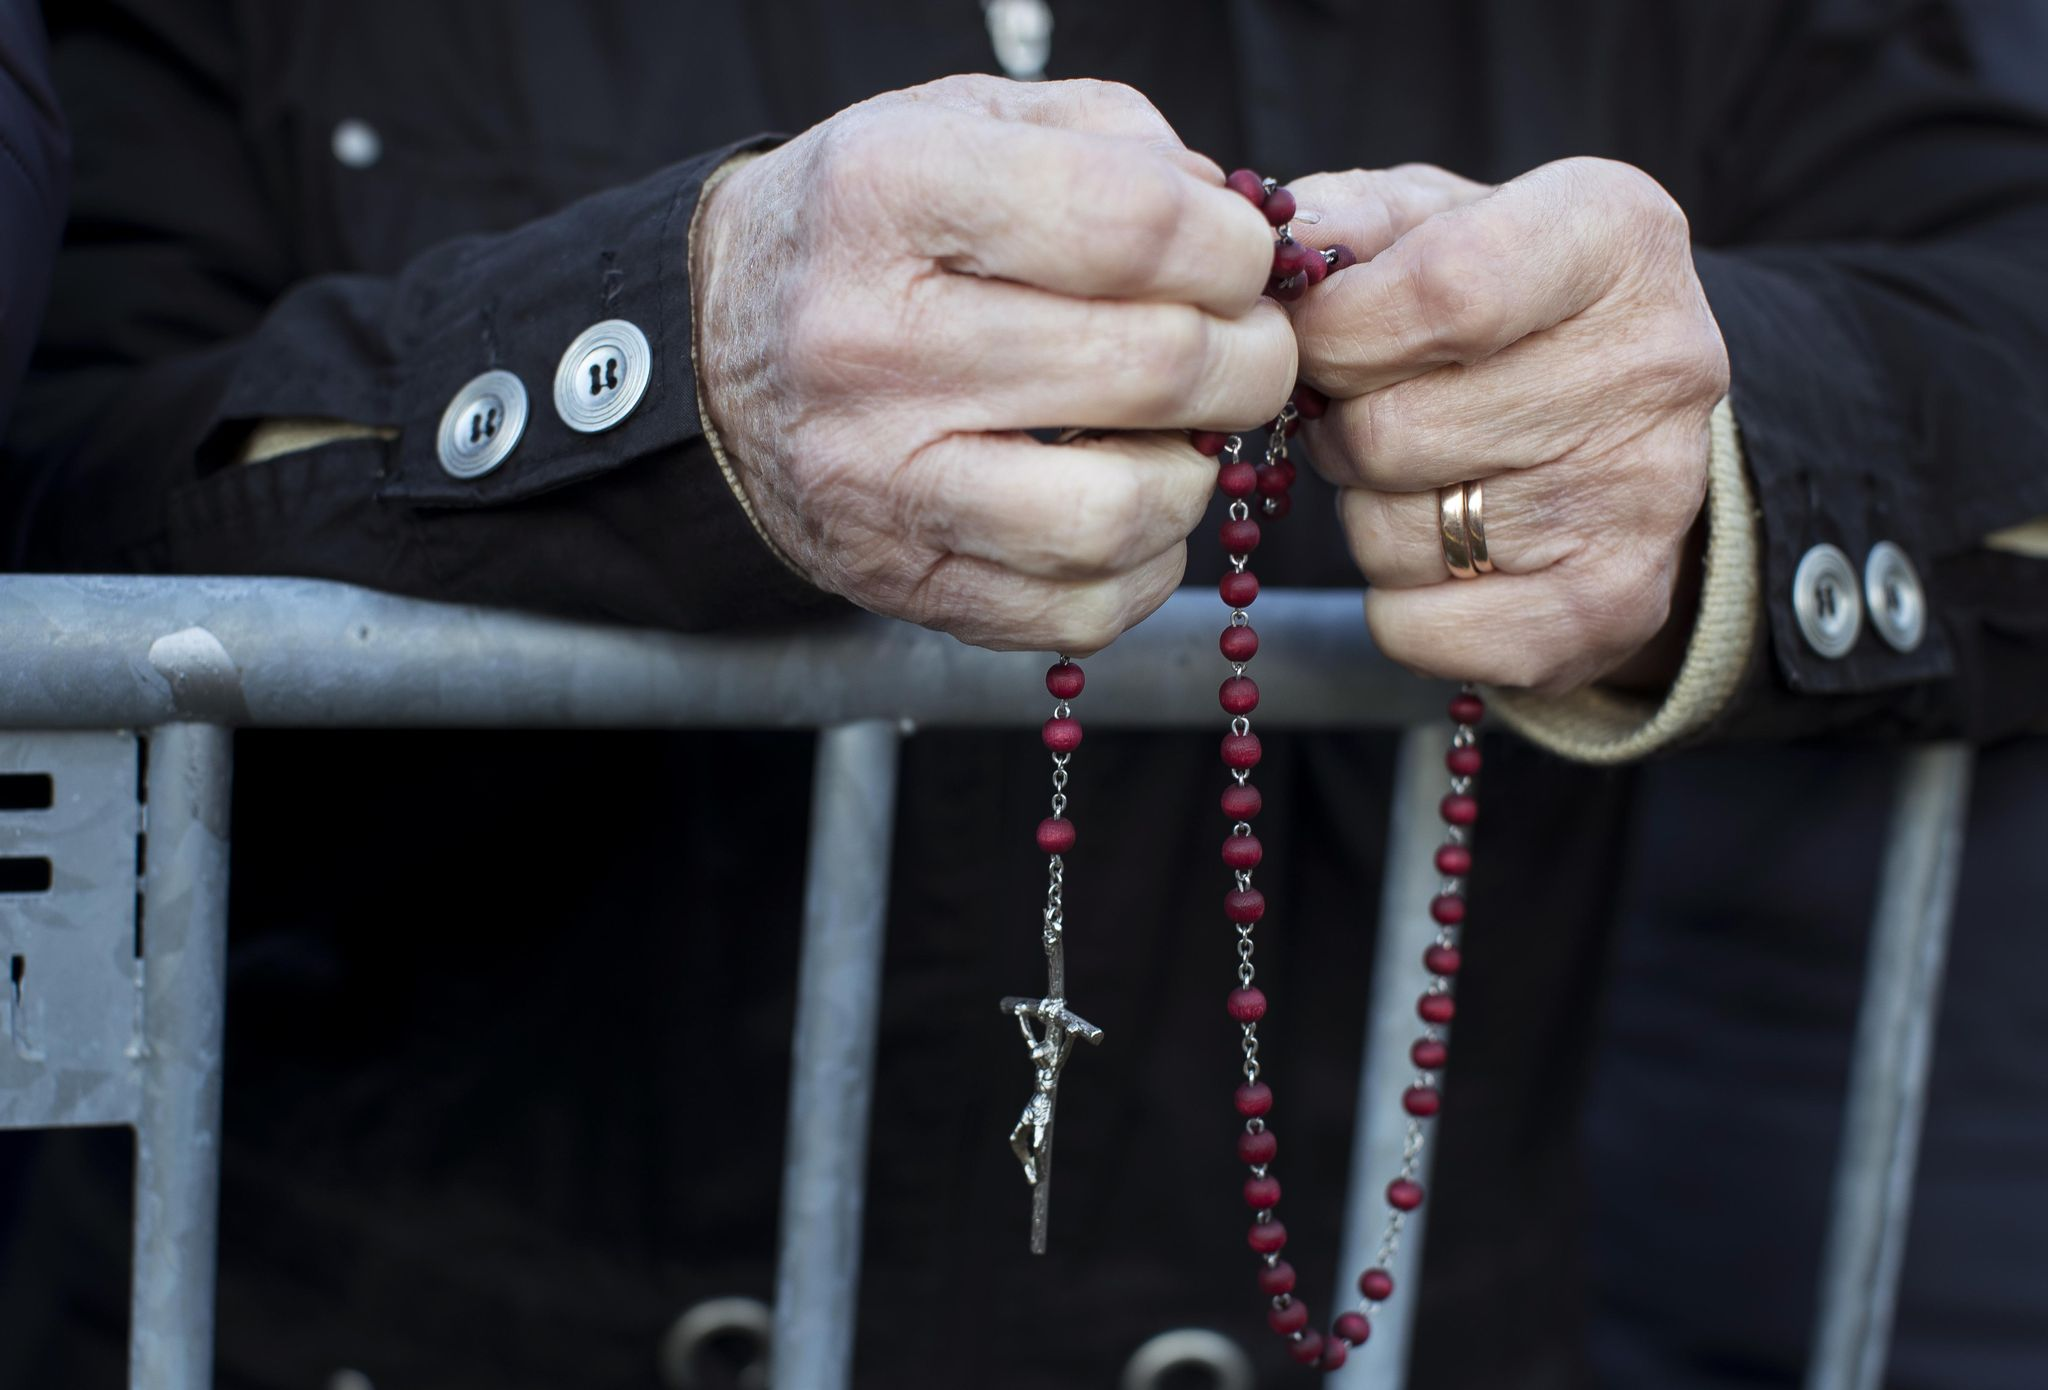 Pope to honor victims of Soviet and Nazi crimes in Baltics - Washington Times